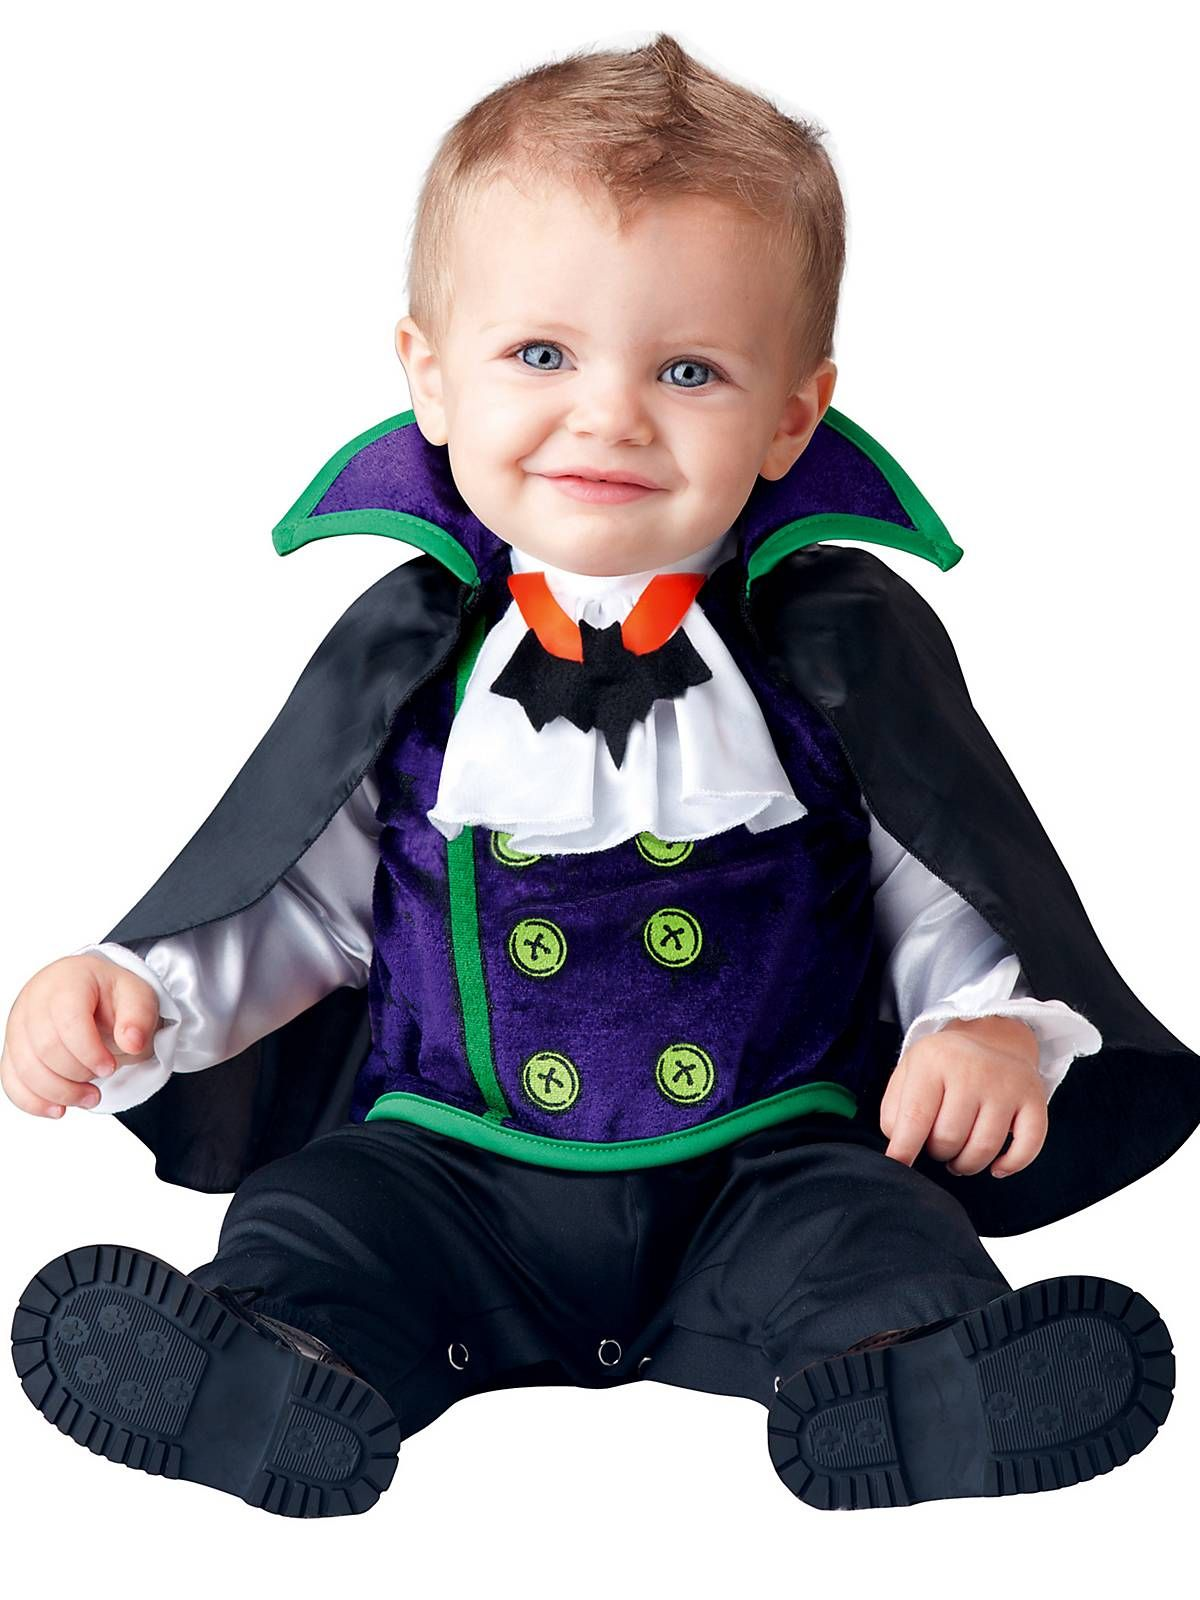 boyu0027s toddler count cutie costume cheap horror costumes for infants u0026 toddlers